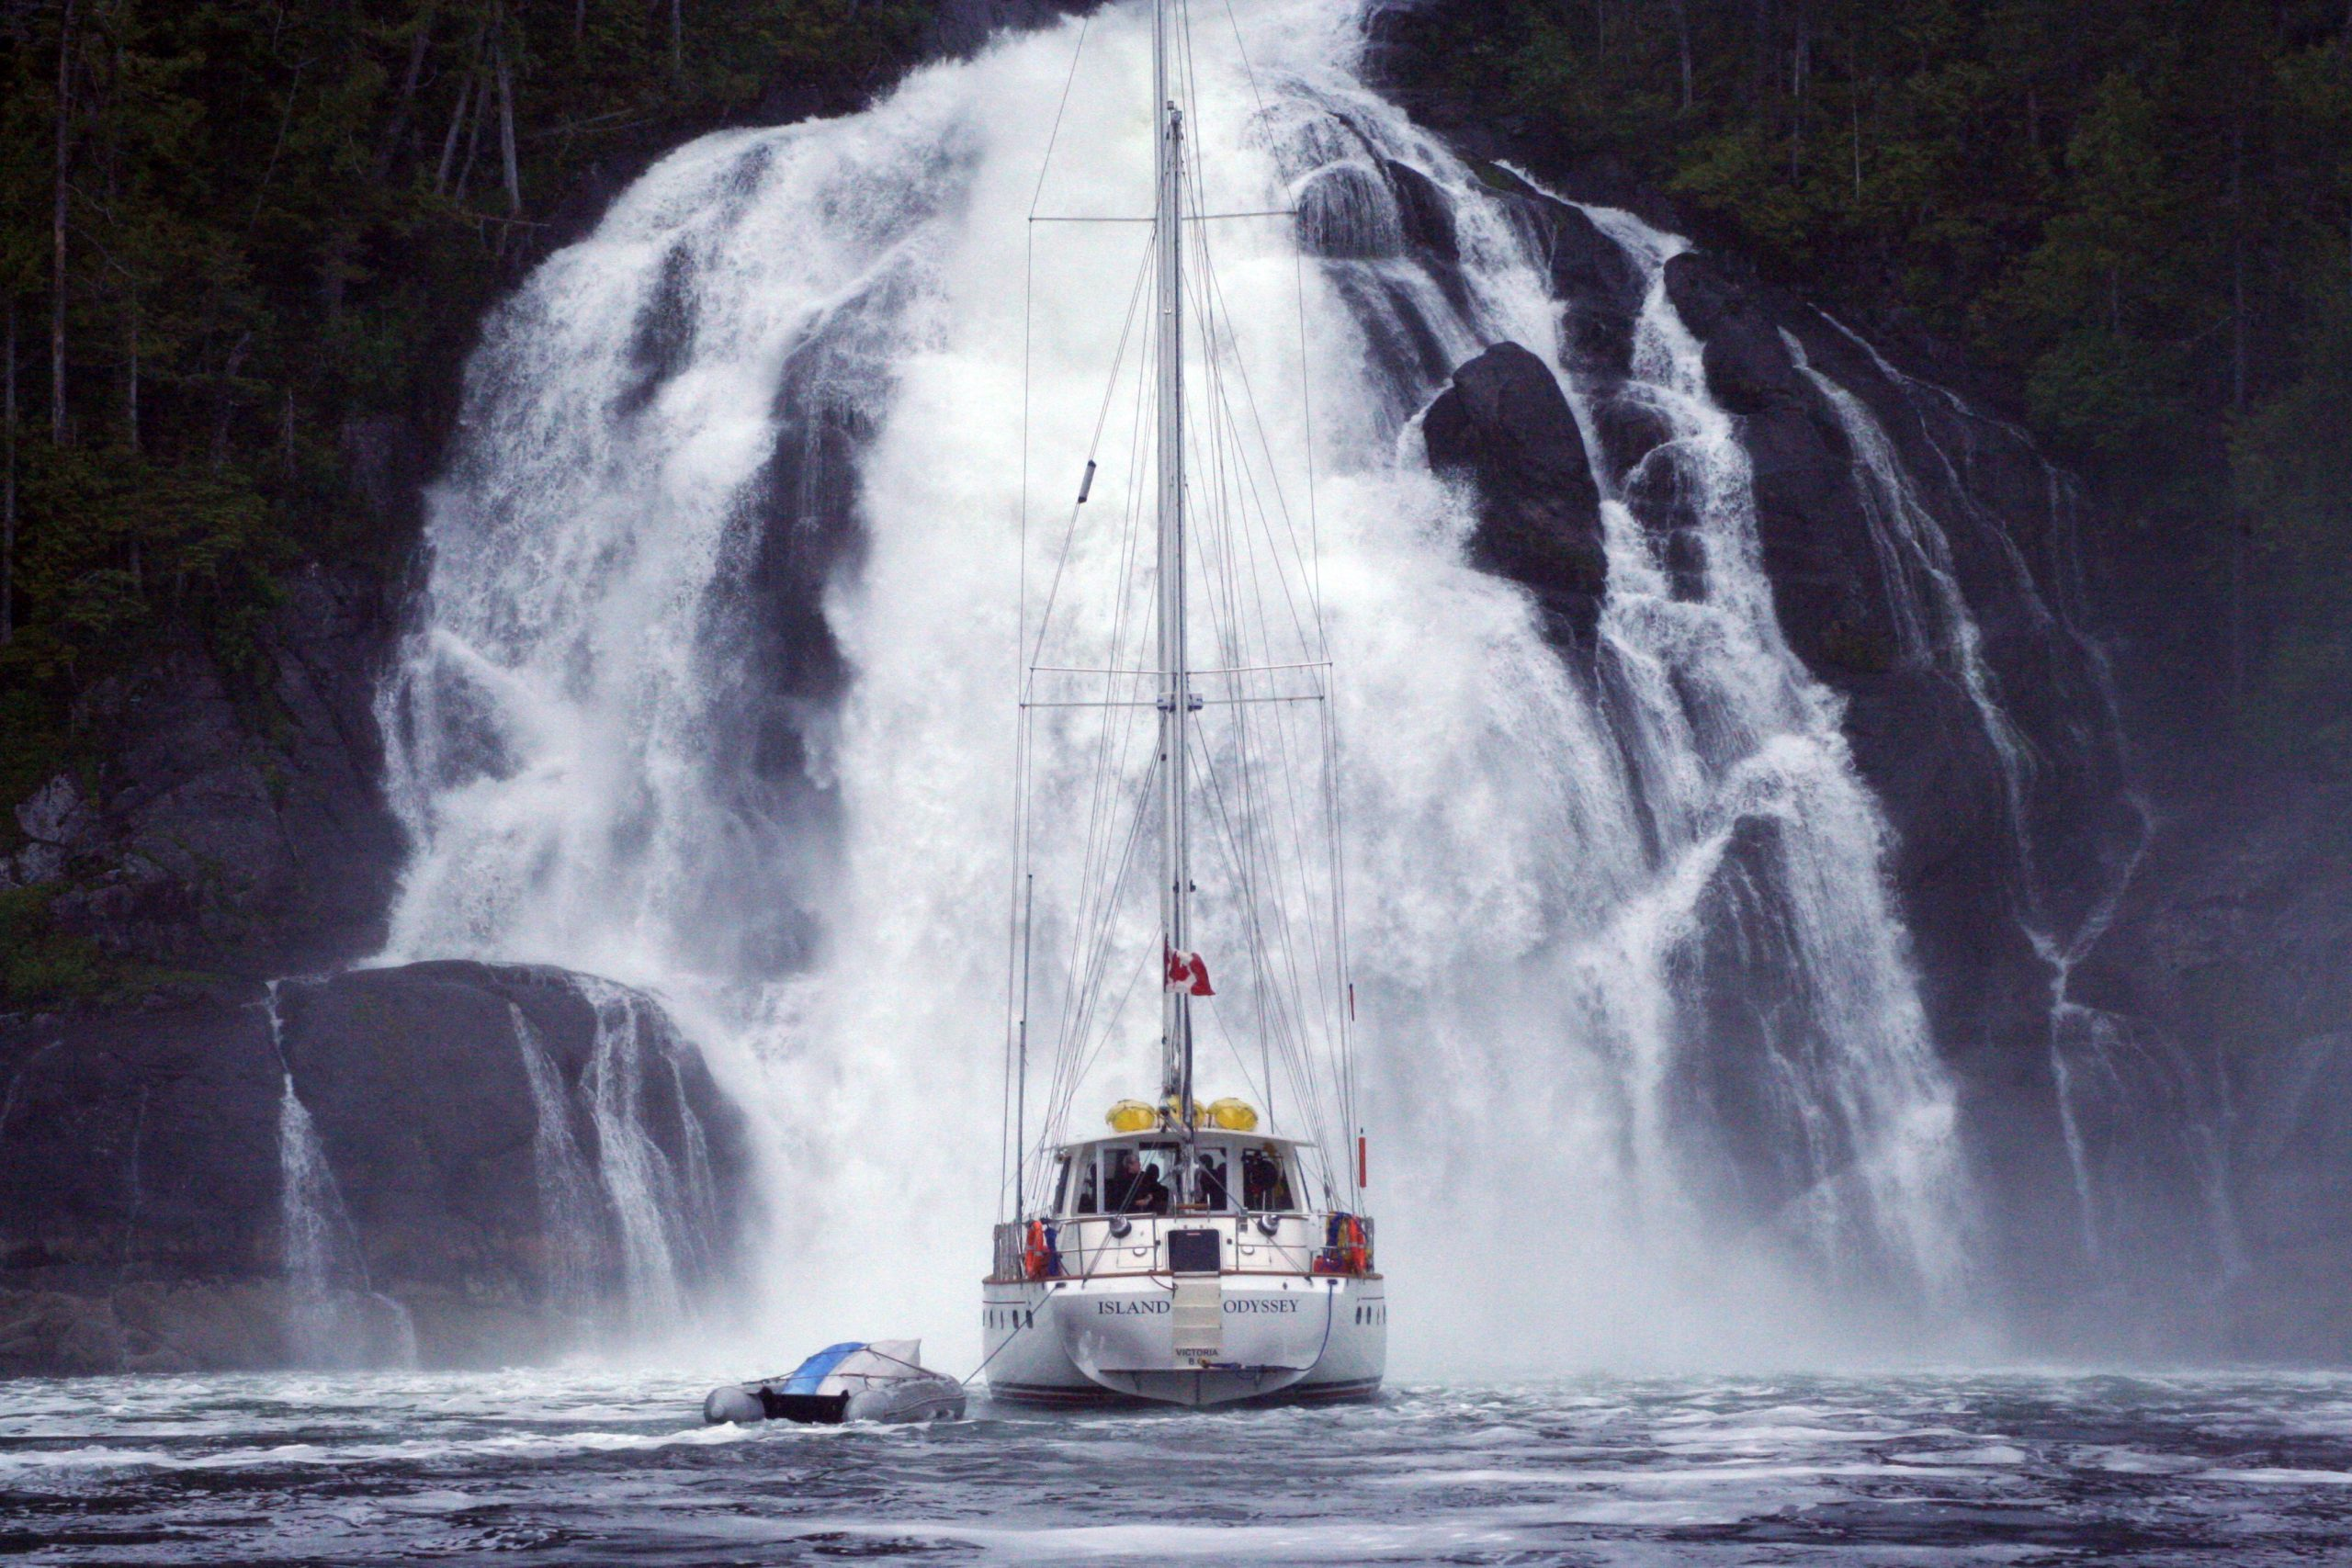 """<div id=""""tc-link""""><a href=""""https://www.bluewateradventures.ca/"""" target=""""_blank"""">Bluewater Adventures</a></div>"""